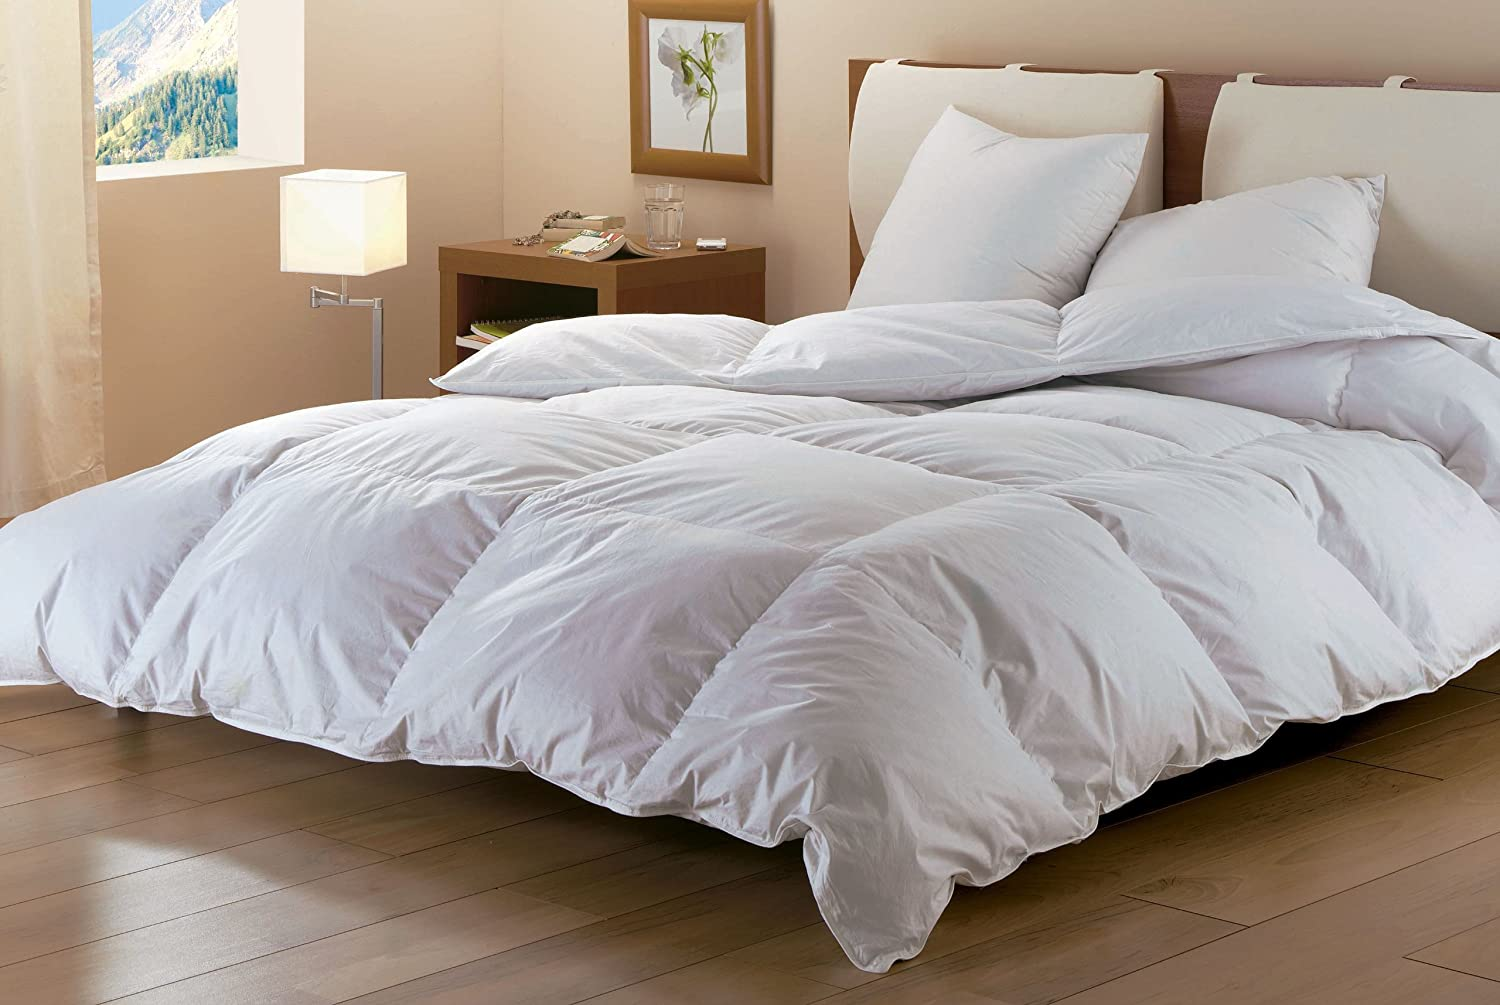 oreiller duvet d oie ou de canard gallery of surmatelas drouault stella naturel gm en duvet oie. Black Bedroom Furniture Sets. Home Design Ideas